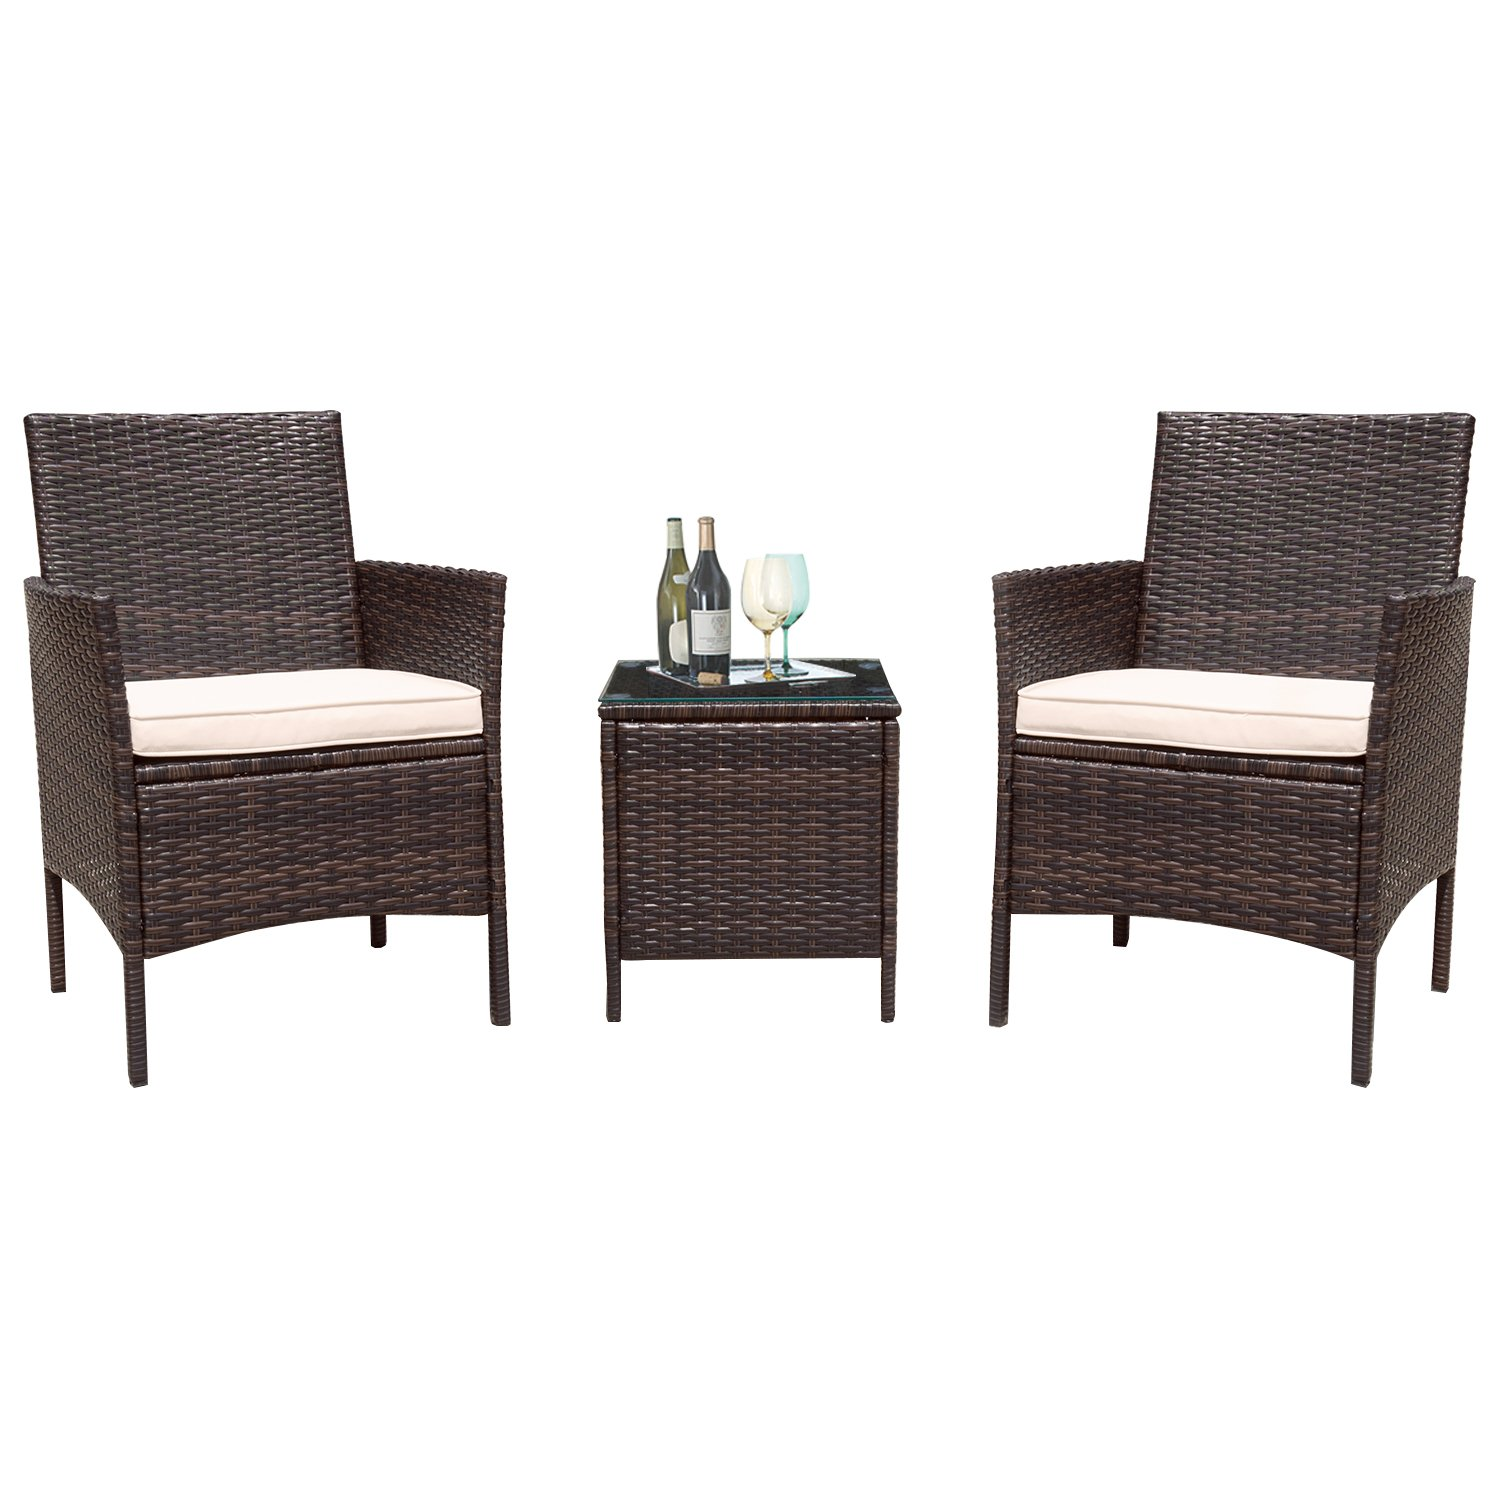 Flamaker 3 Pieces Patio Furniture Set Modern Outdoor Furniture Sets Clearance Cushioned PE Wicker Bistro Set Rattan Chair Conversation Sets with Coffee Table (Brown Wicker) by Flamaker (Image #1)